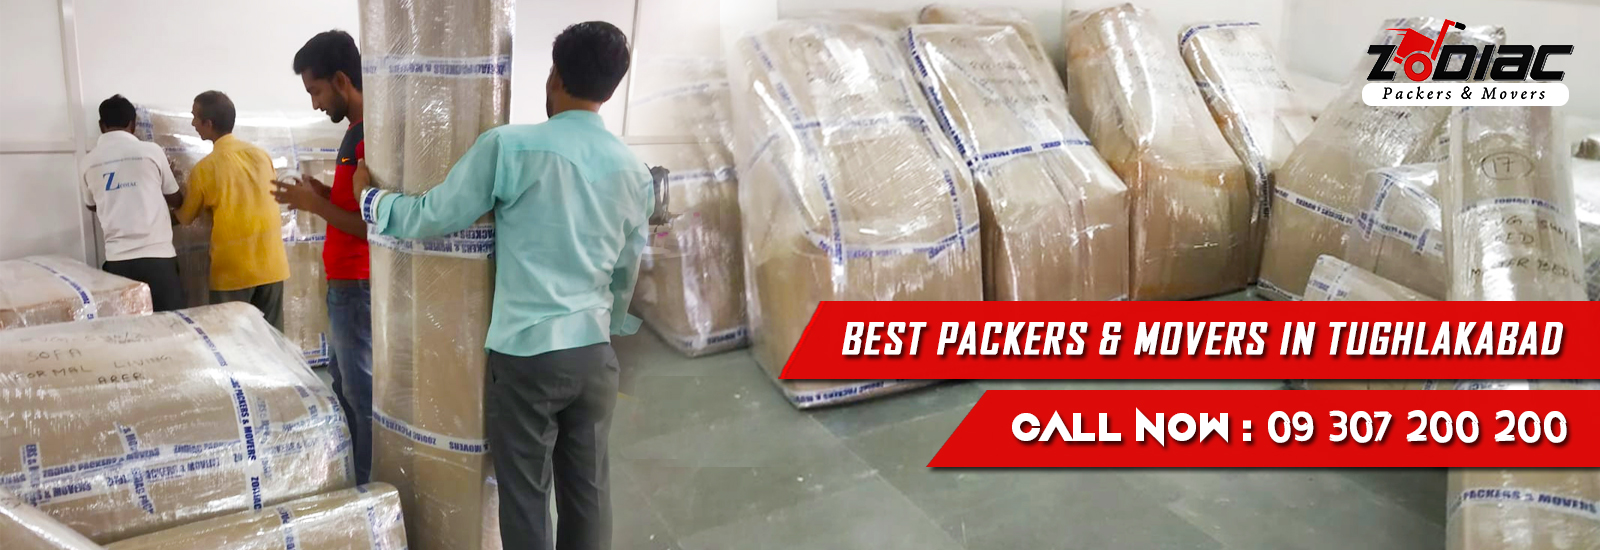 Packers and Movers in Tughlakabad